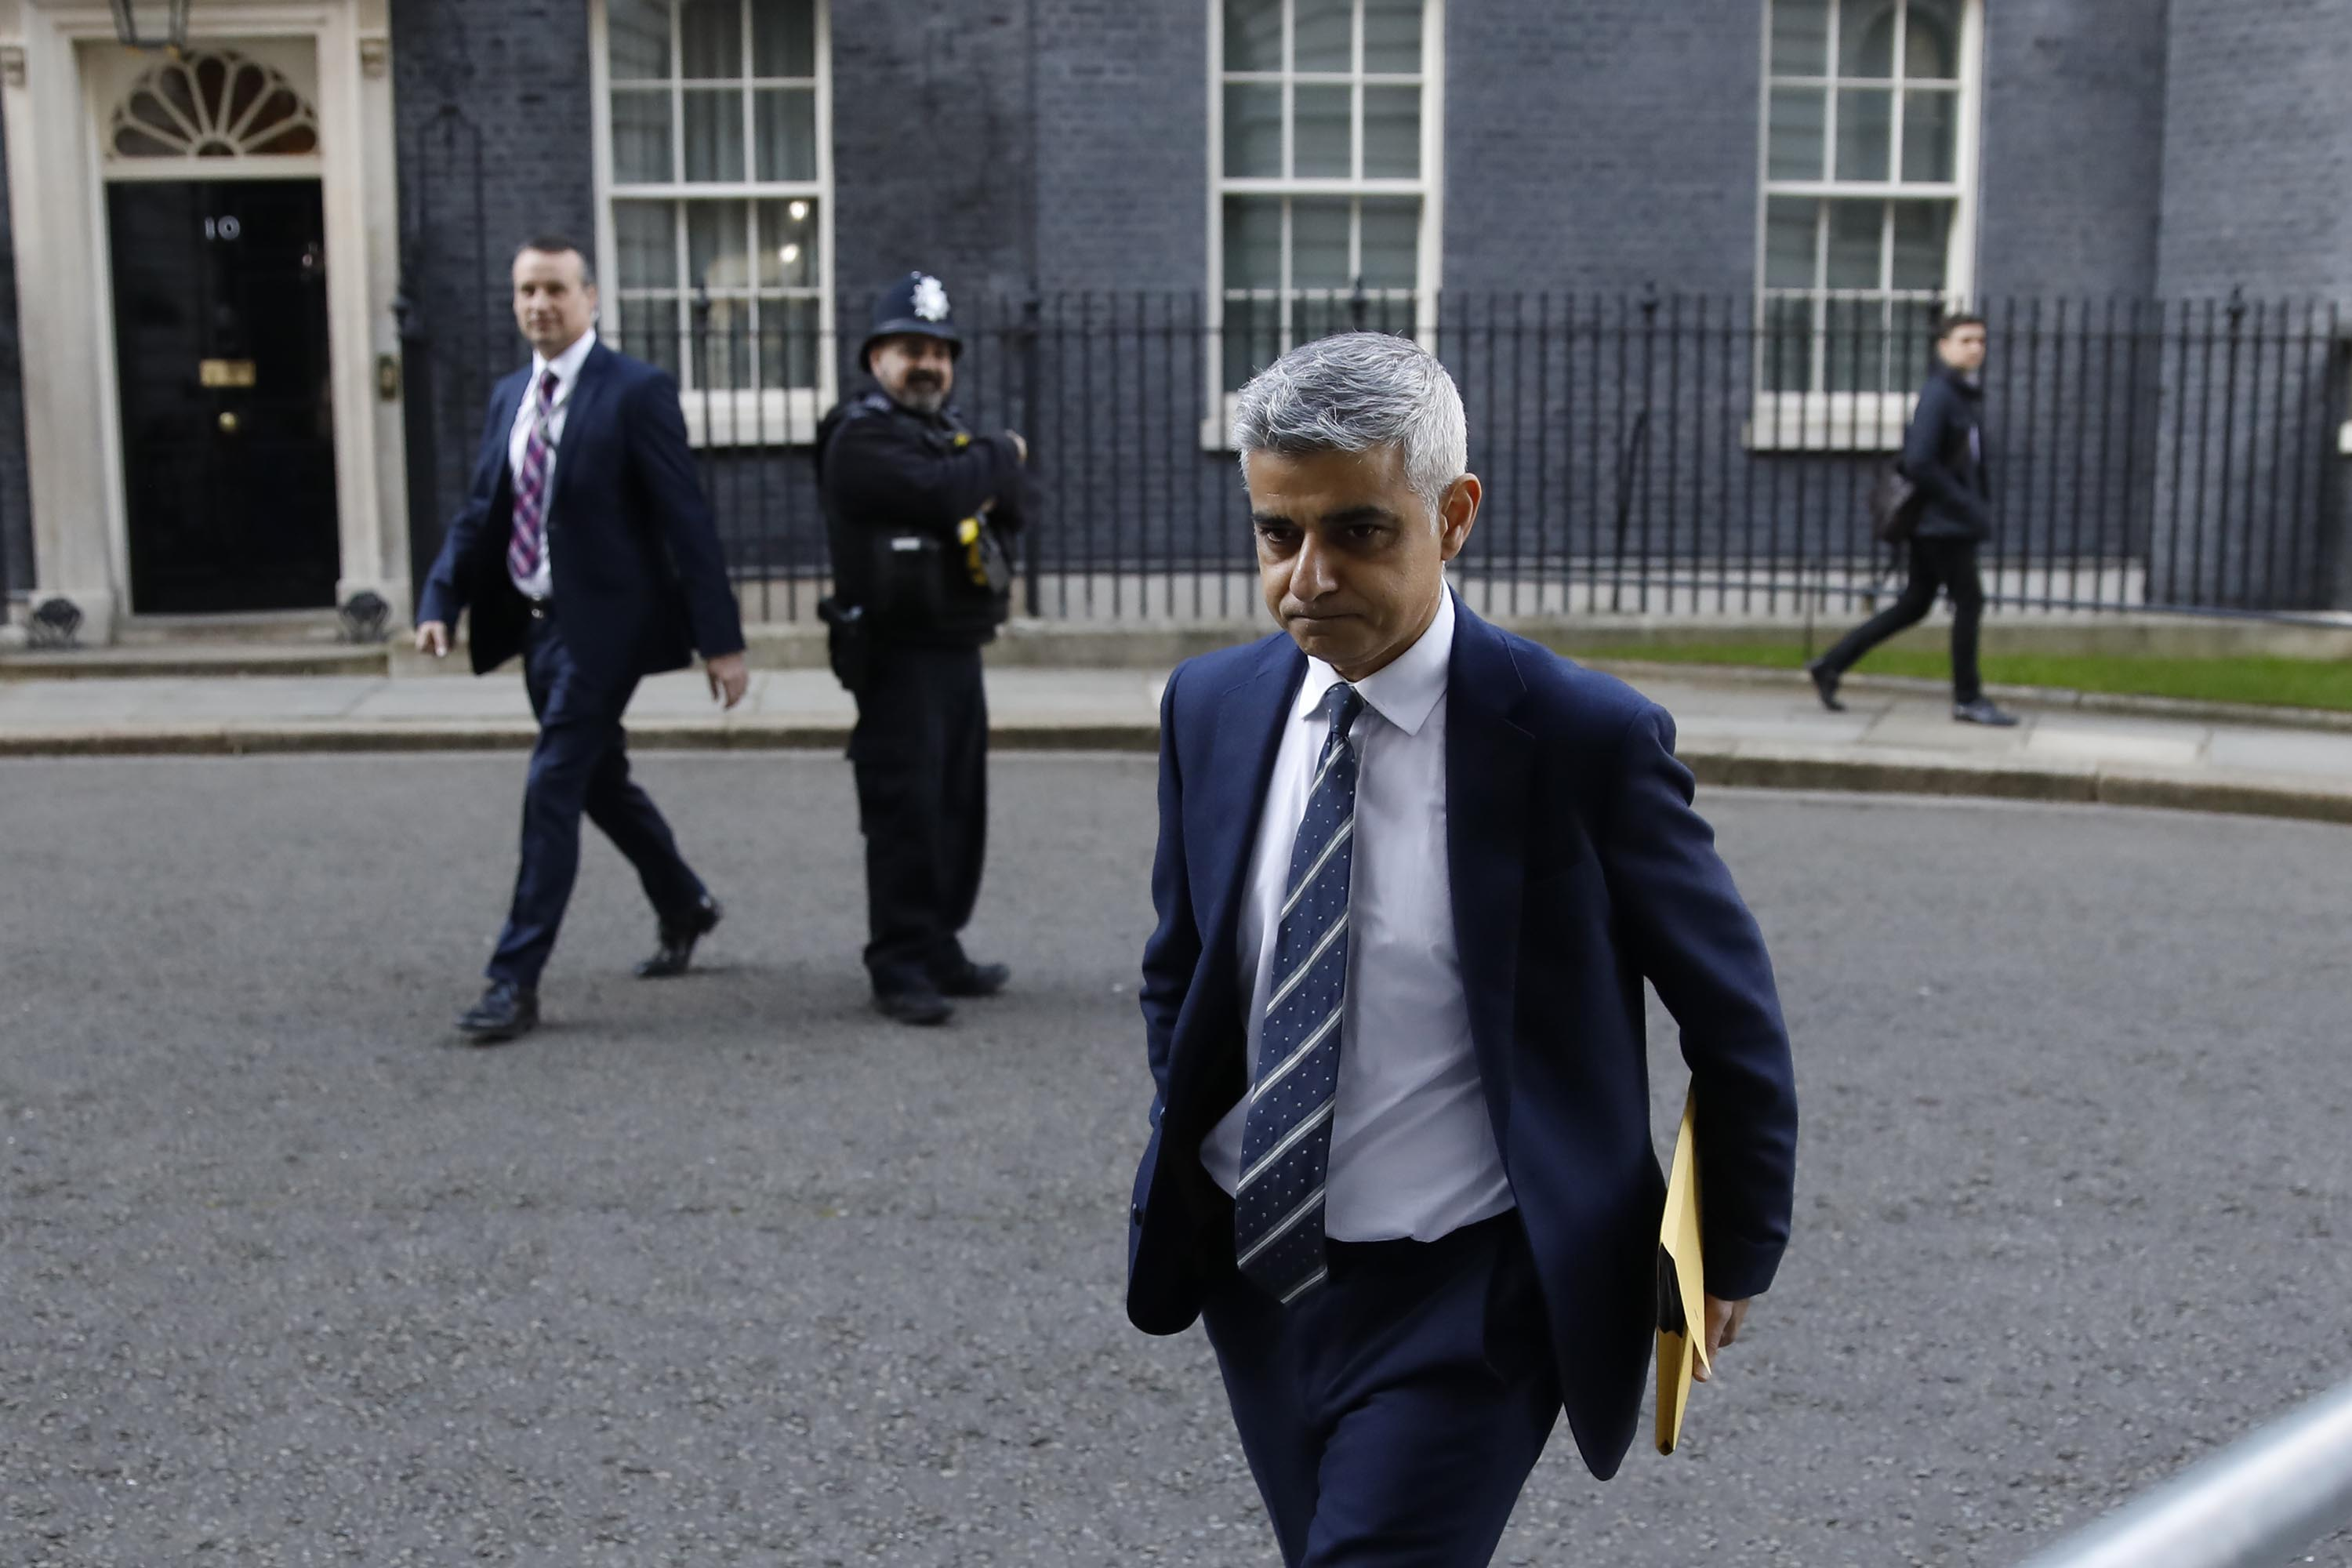 London Mayor Sadiq Khan leaves 10 Downing Street in London on March 16, after an emergency meeting on the UK government's response to the coronavirus outbreak.